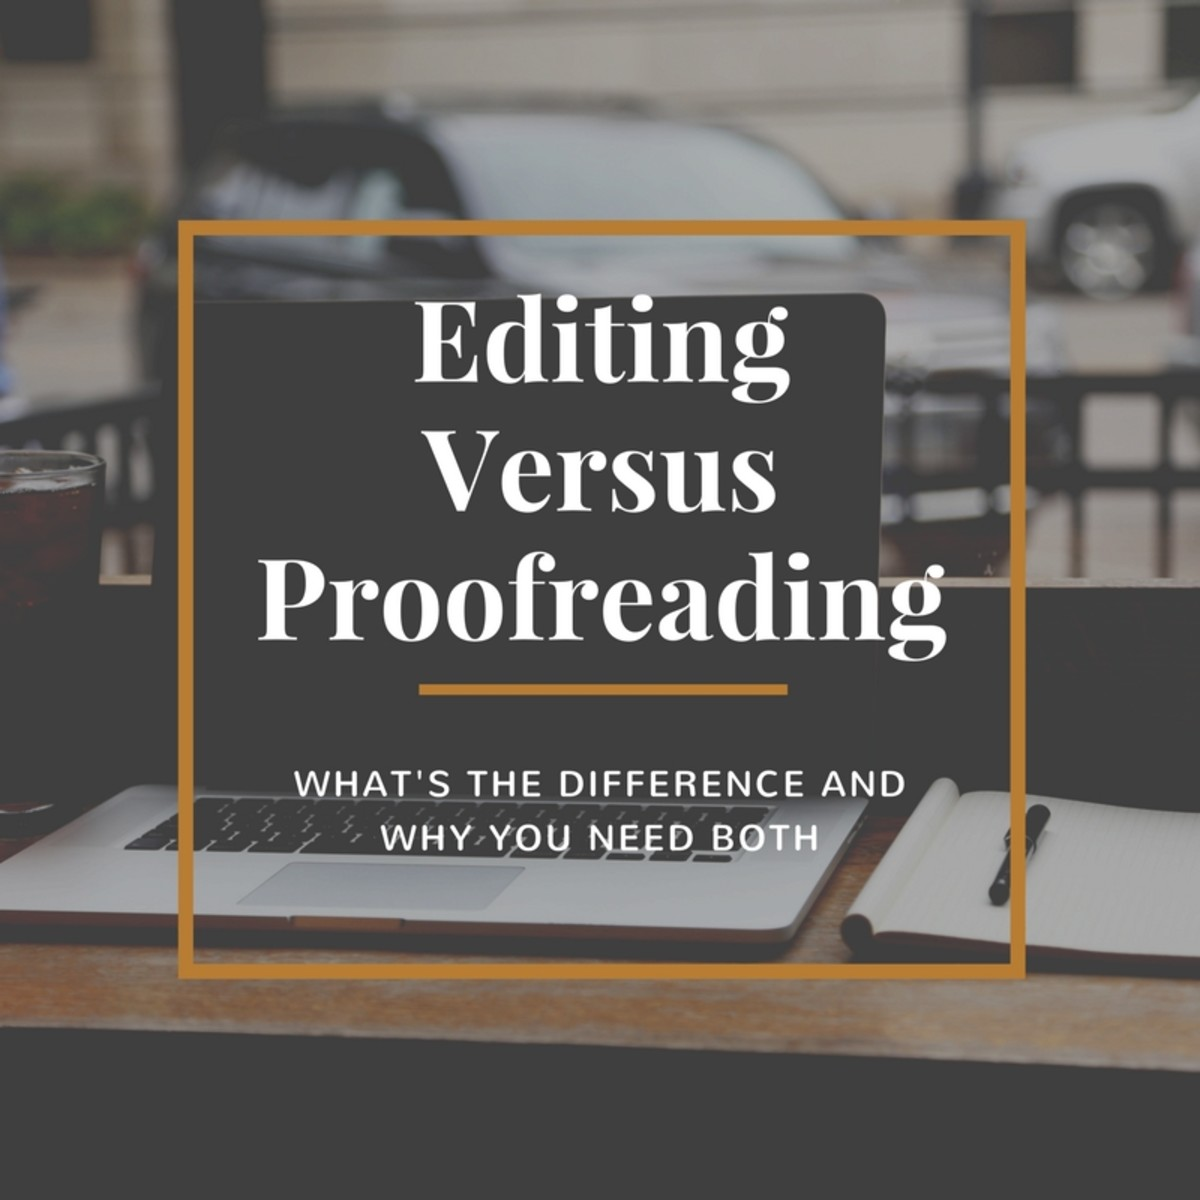 Editing Versus Proofreading: What's the Difference and Why You Need Both